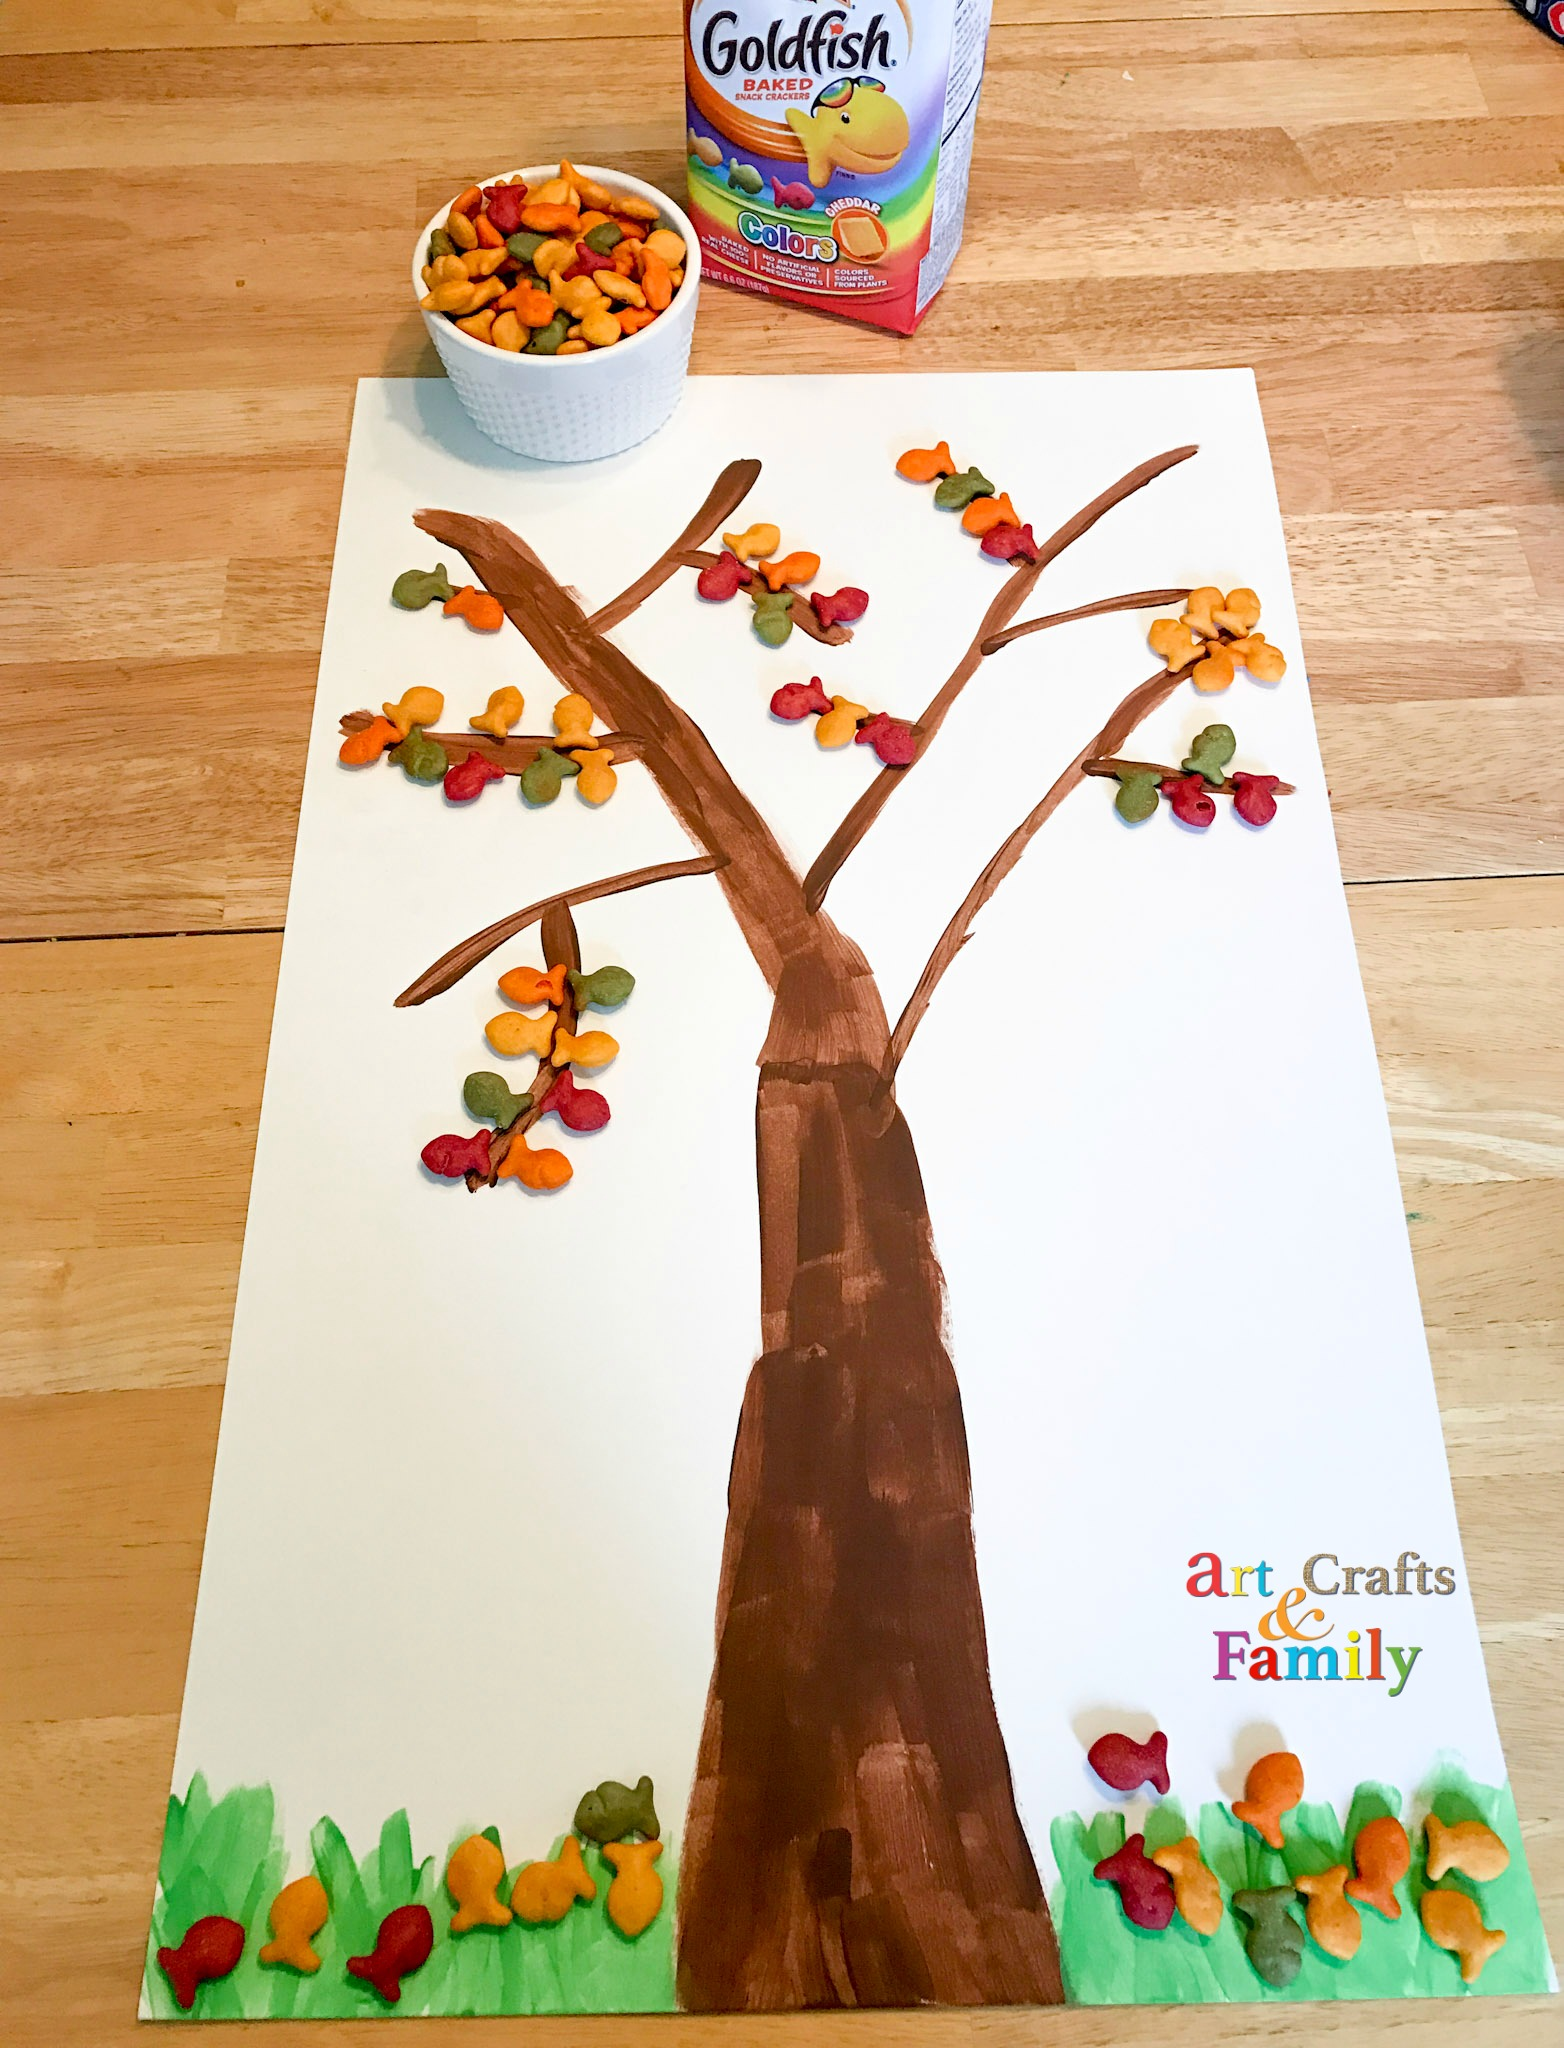 Make a Goldfish Cracker Fall Tree